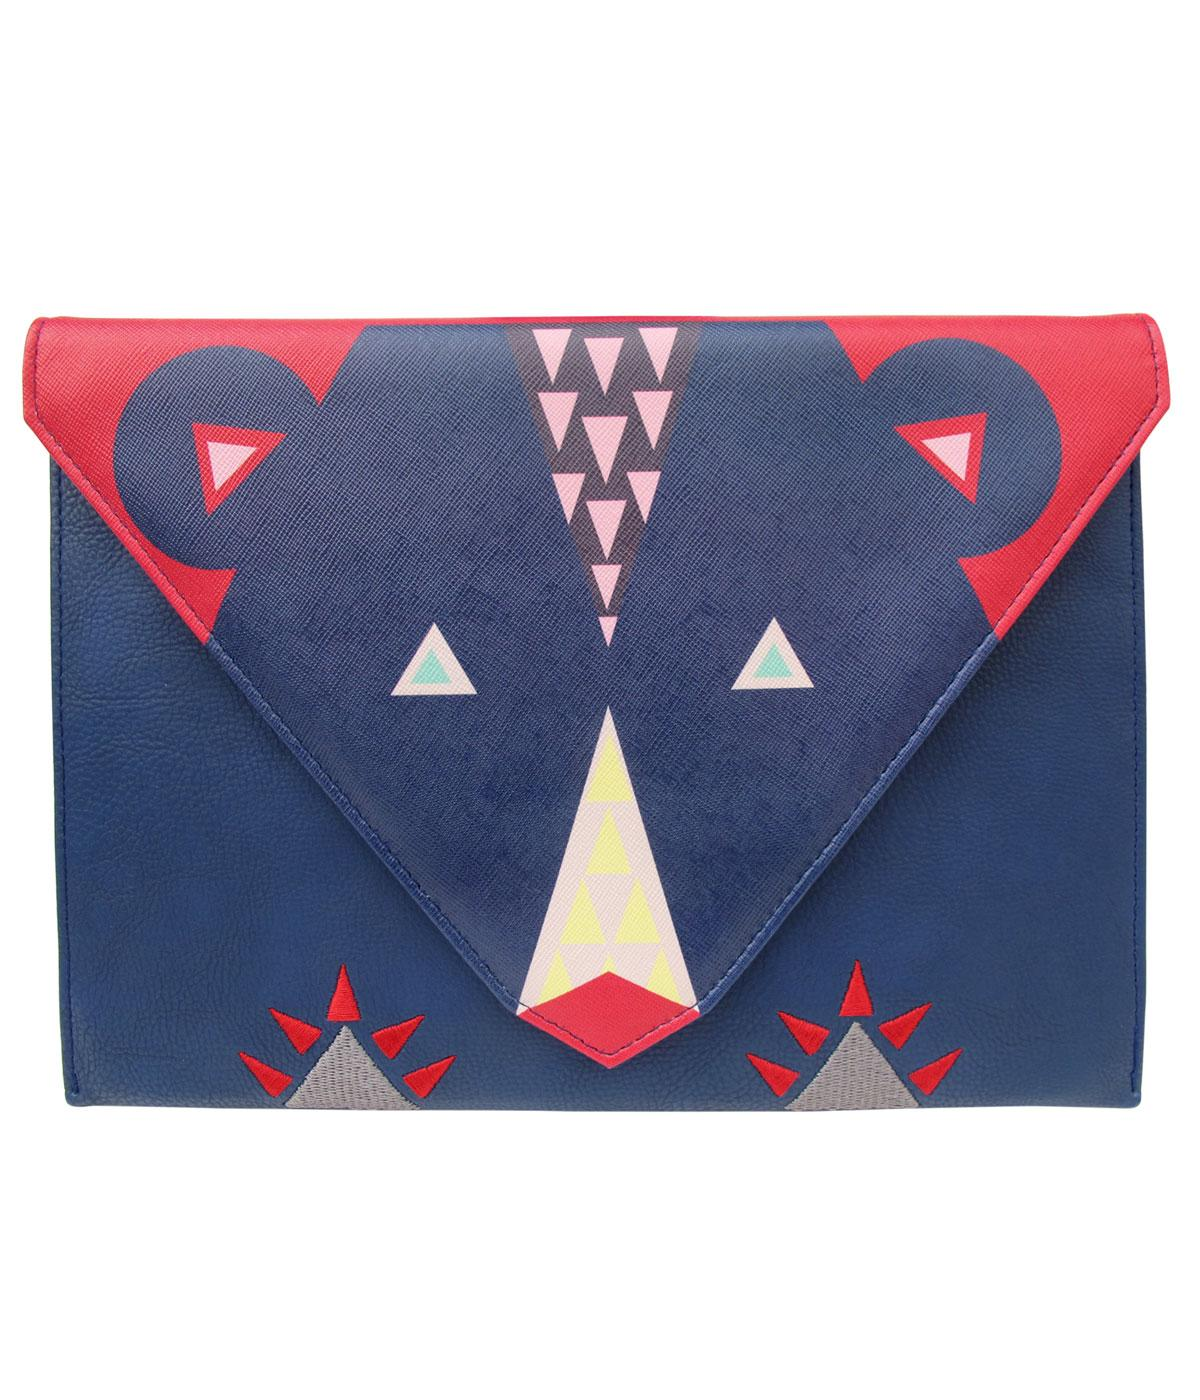 Dakota Bear DISASTER DESIGNS 1960s Mod Clutch Bag